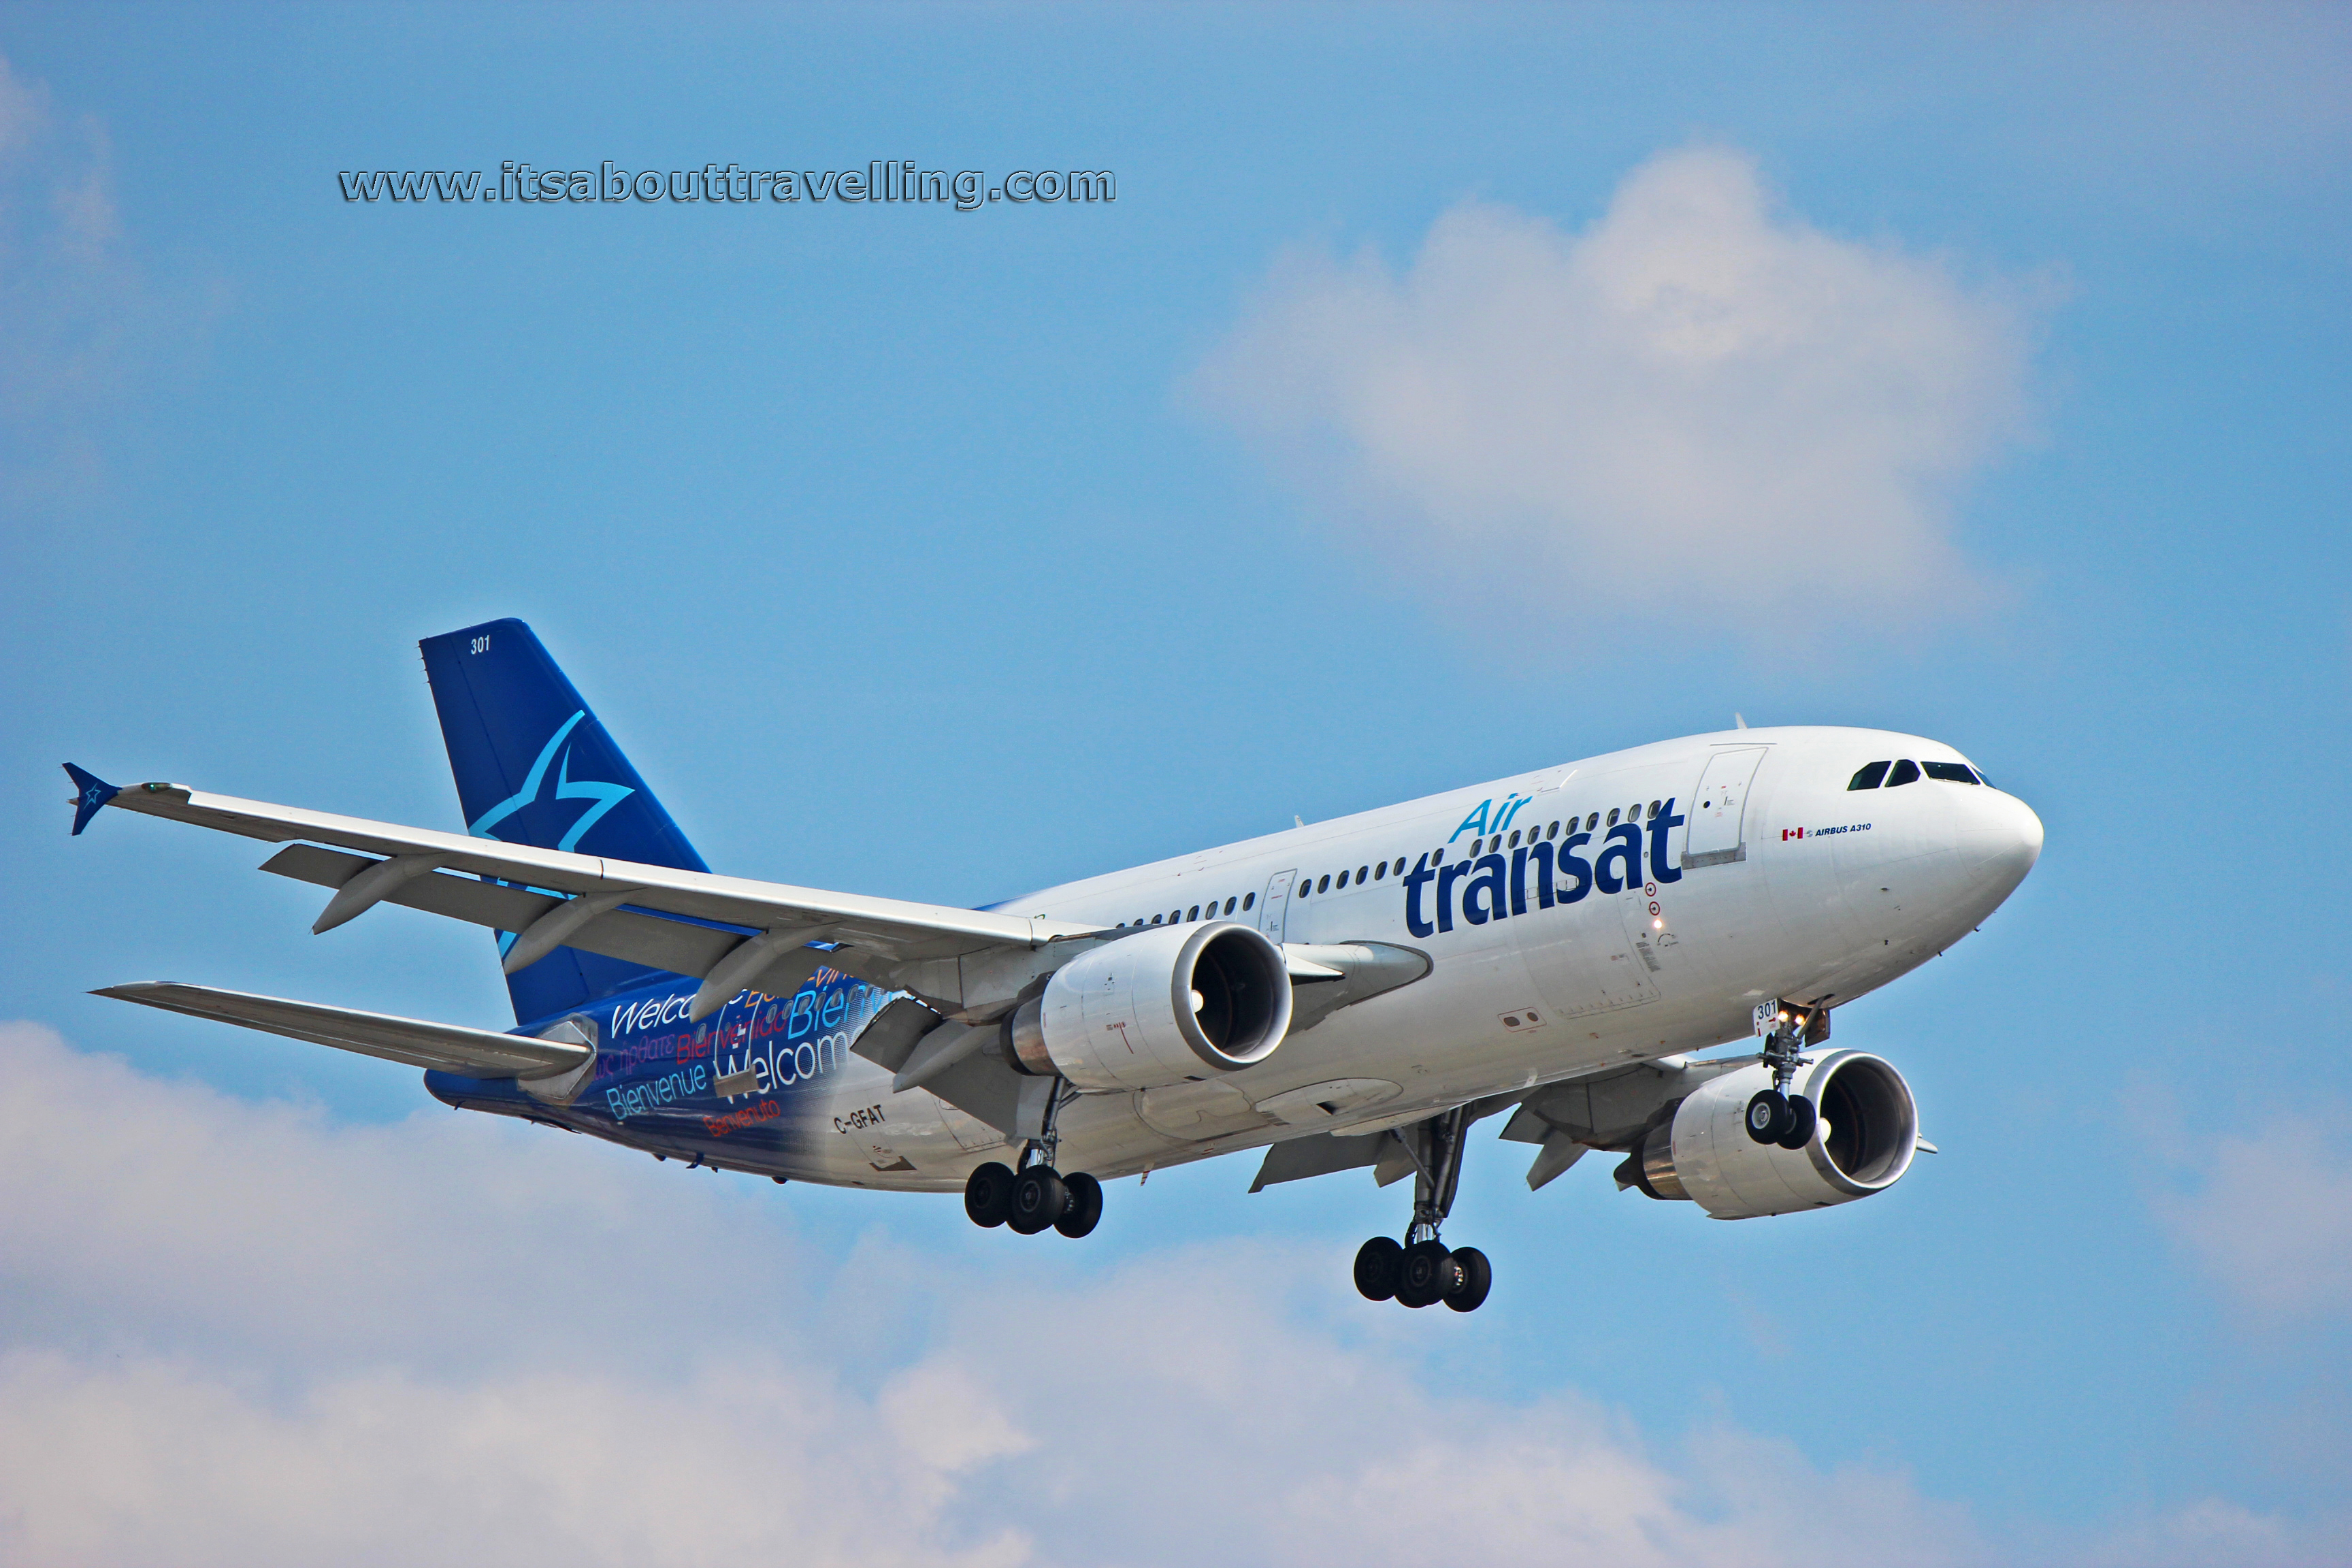 c gfat air transat airbus a310 it s about travelling